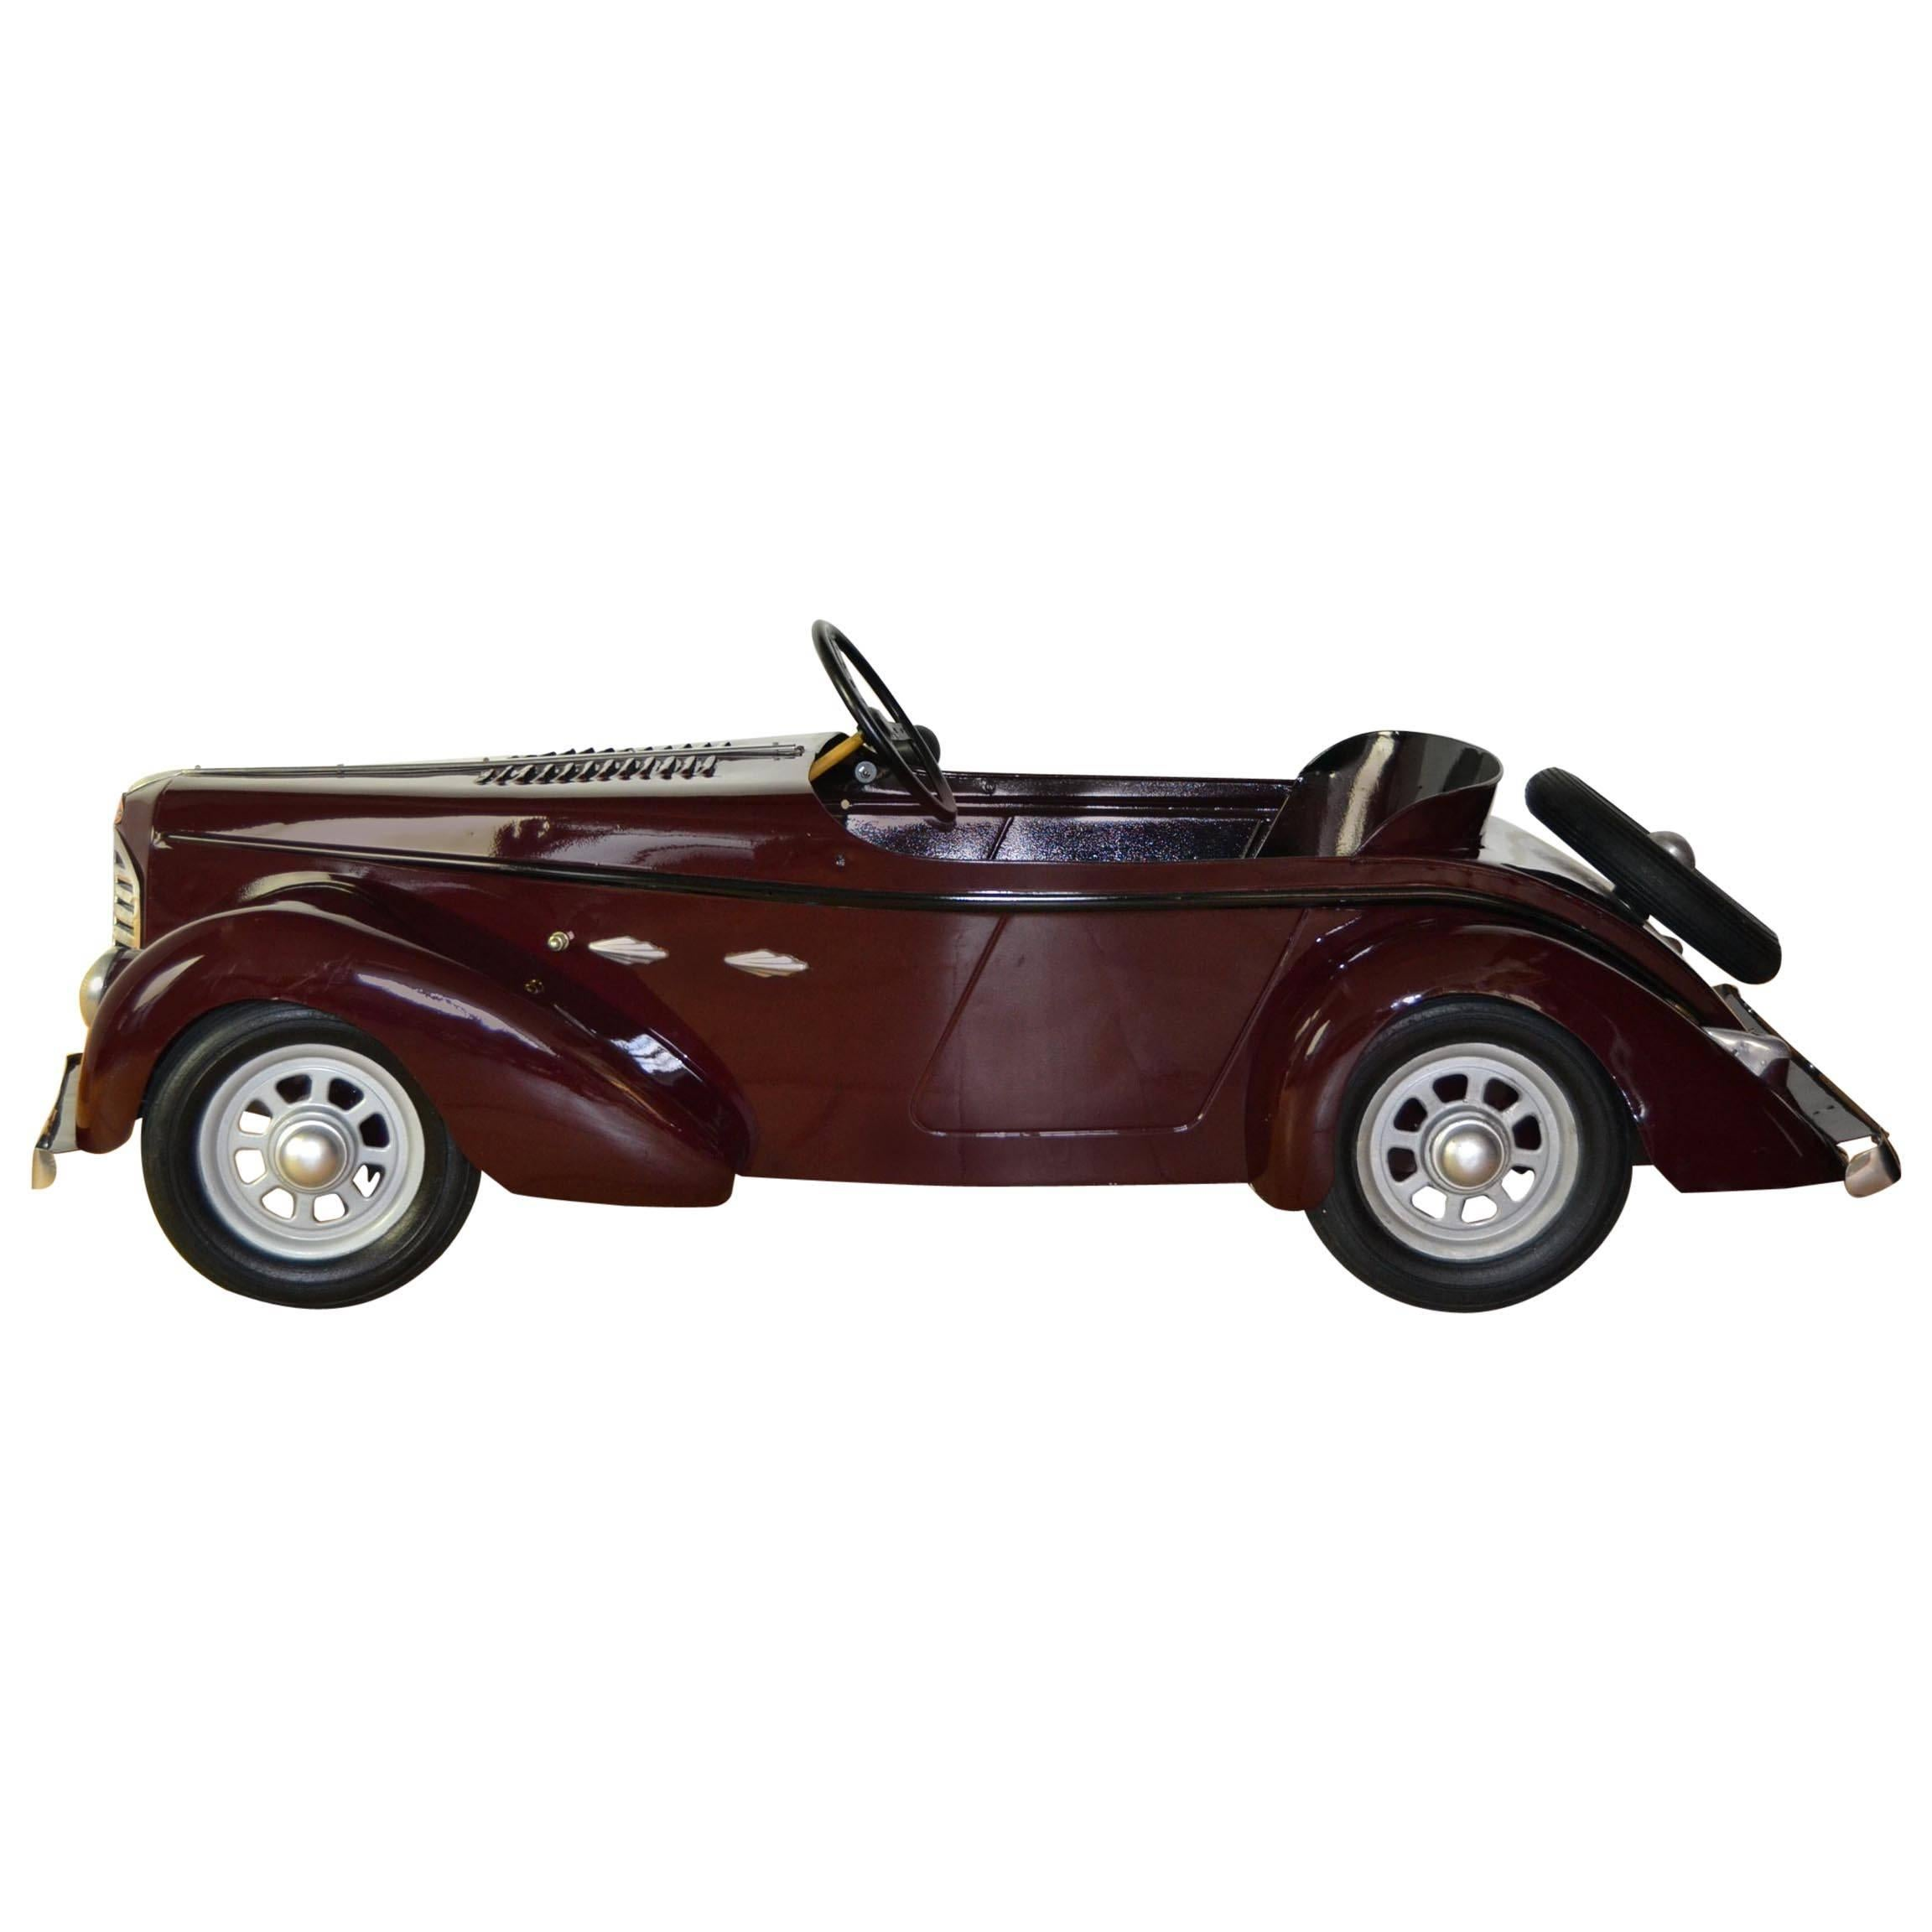 Vintage Soviet Horse Tricycle Pedal Car For Sale at 1stdibs